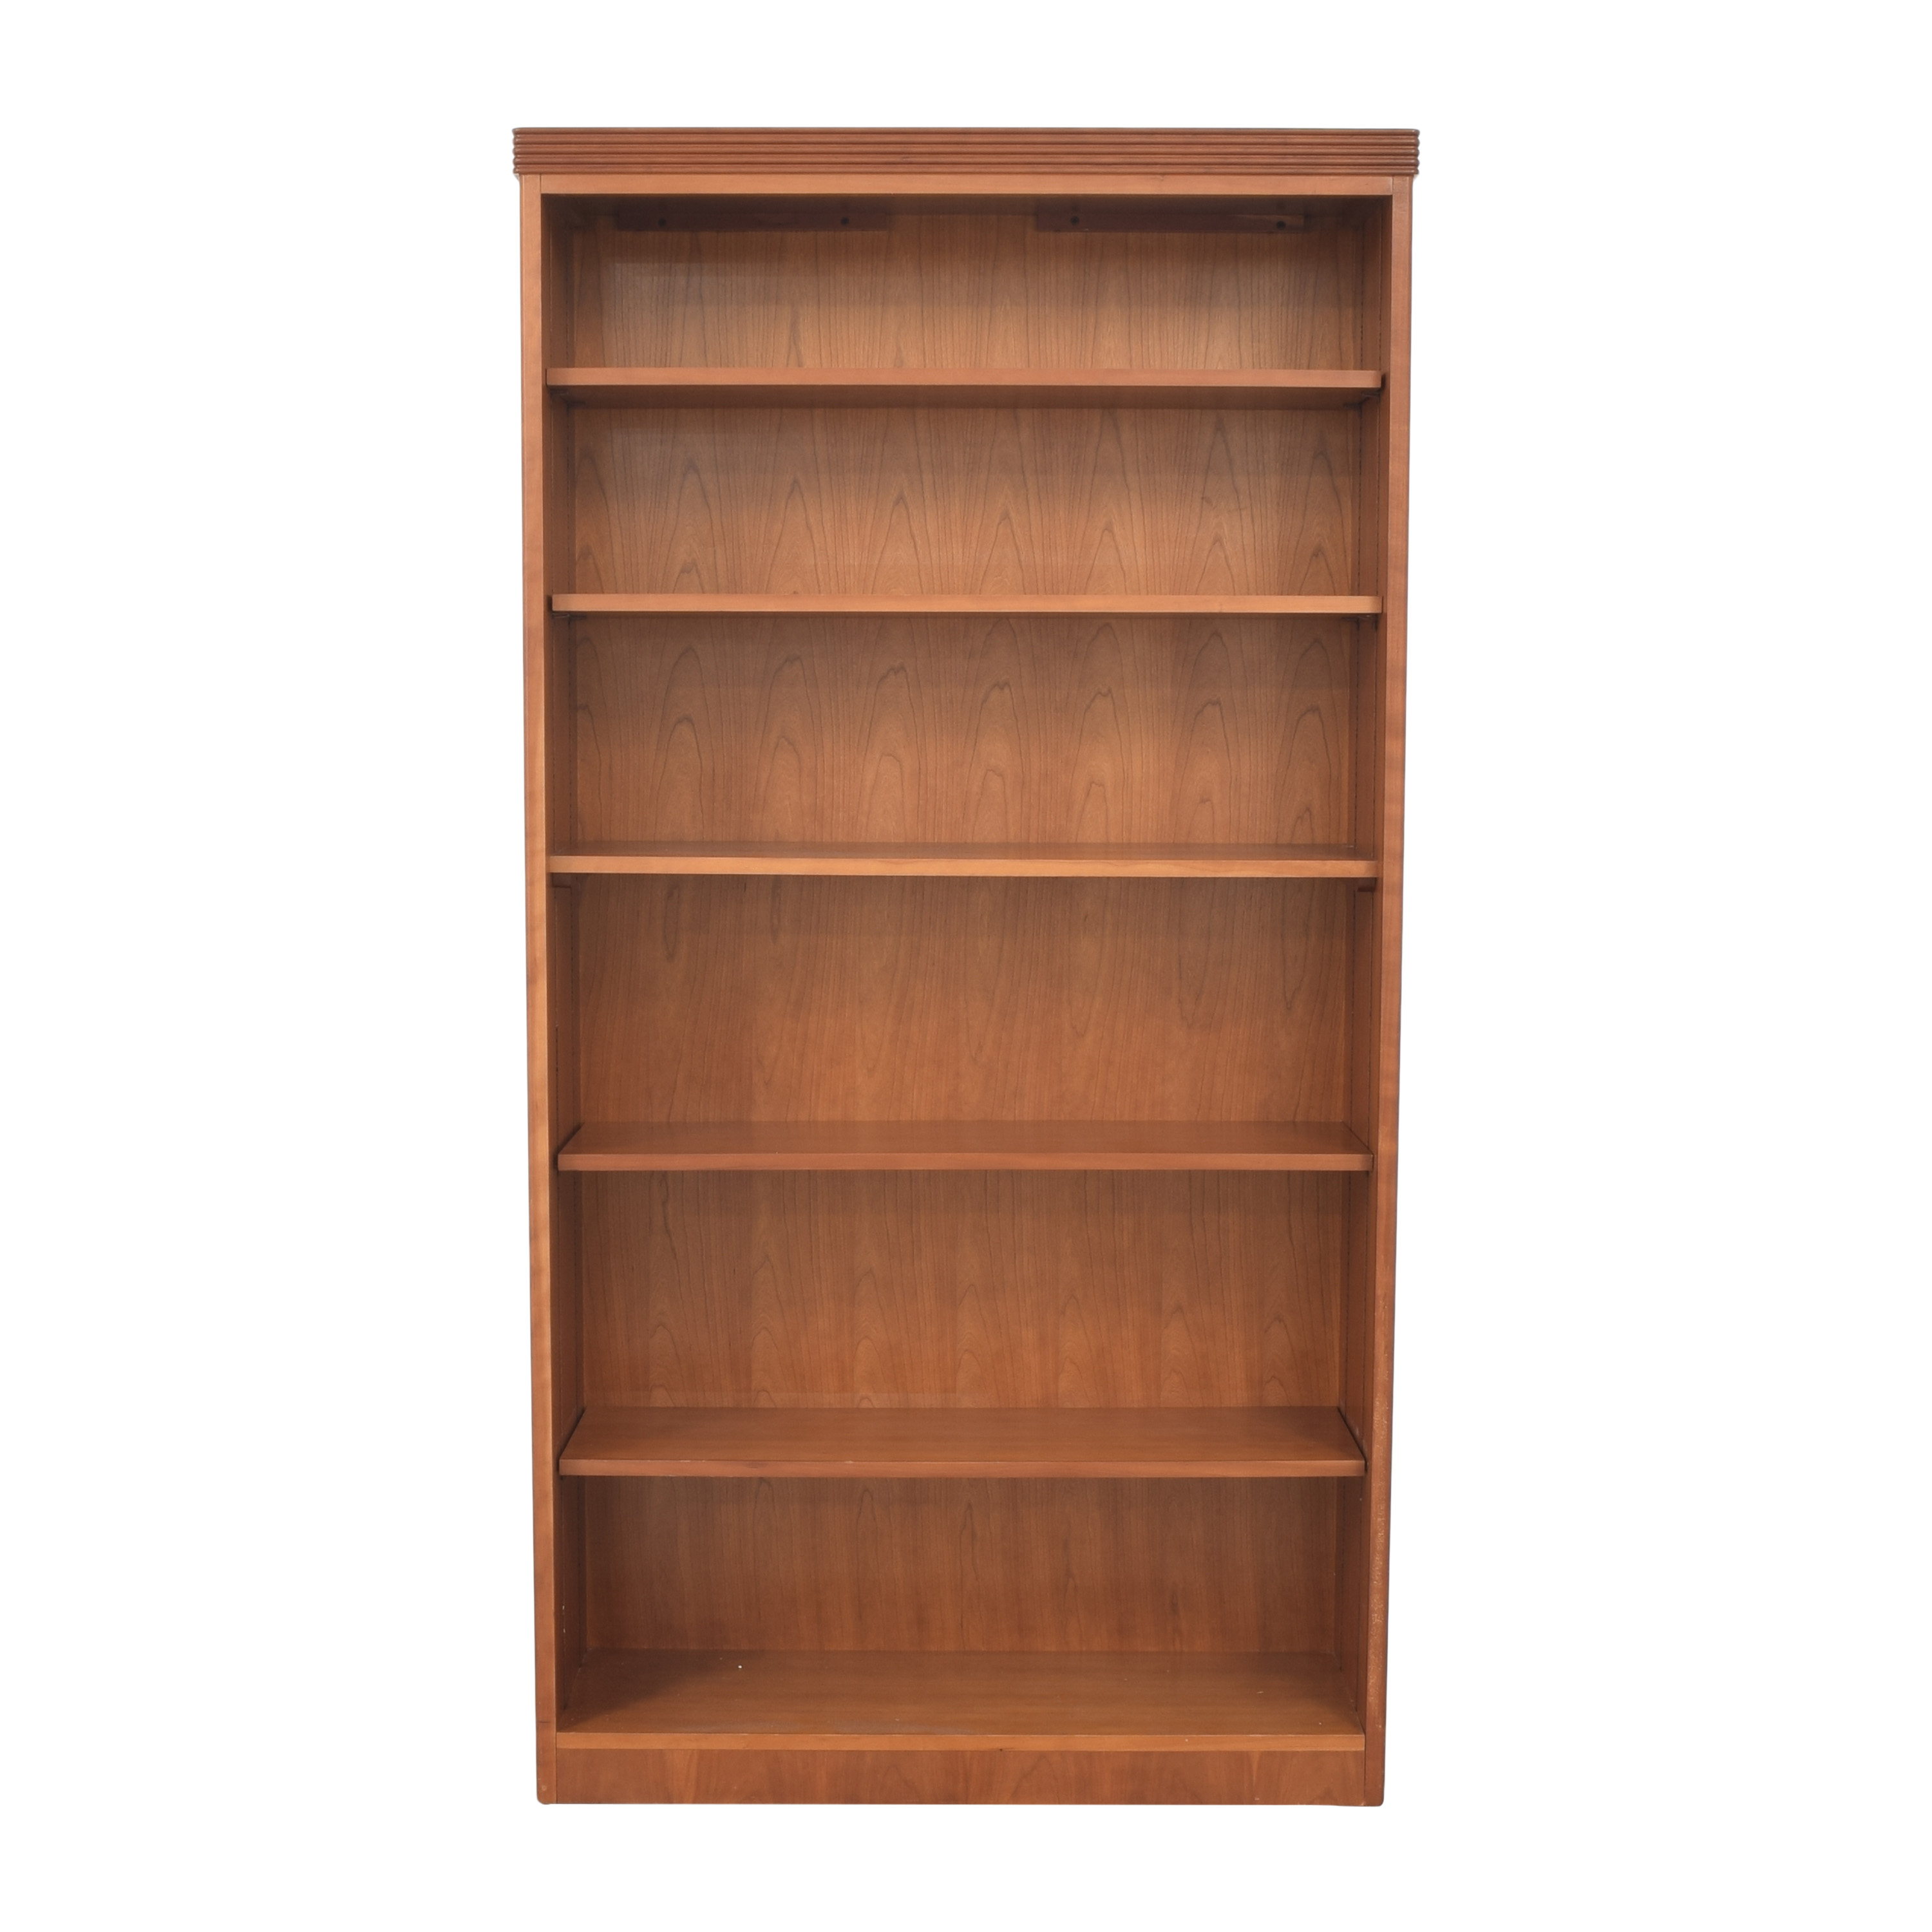 Jasper Bookcase with Adjustable Shelves dimensions